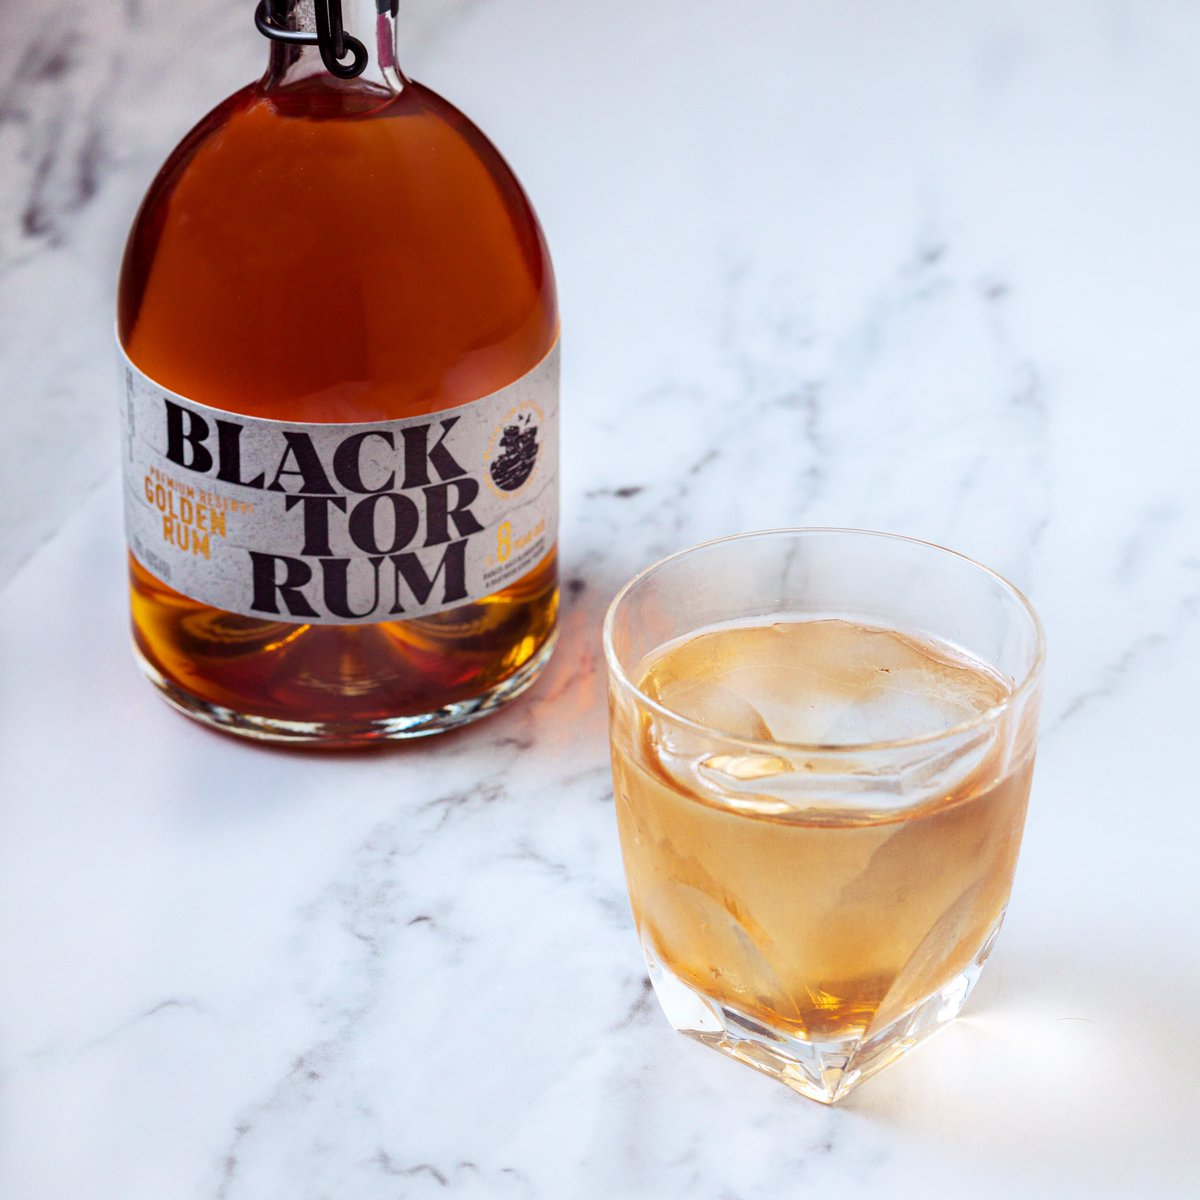 Best served on the rocks. Discover Black Tor Premium Reserve Golden Rum from the wild foothills by ordering online with nationwide delivery in 1-2 days. blacktorrum.com/product/premiu… #rum #sippingrum #Dartmoor #DevonRum